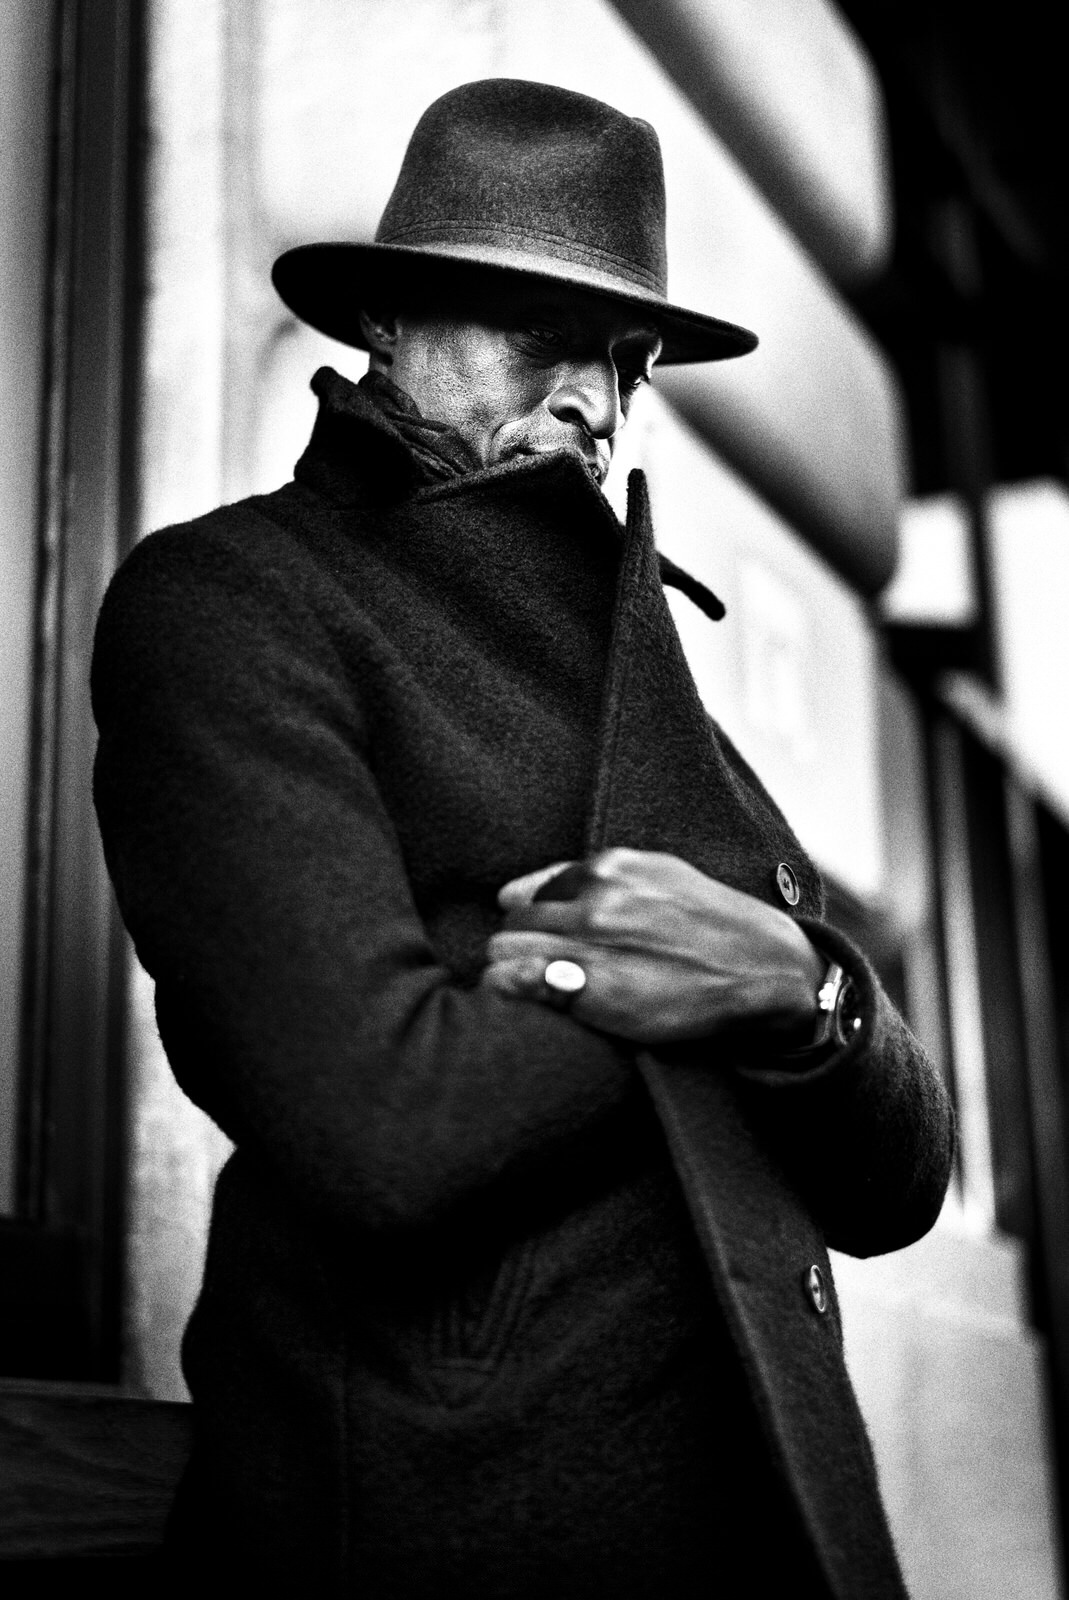 Alan Schaller - London Street Photographer - International - Portrait9.jpg